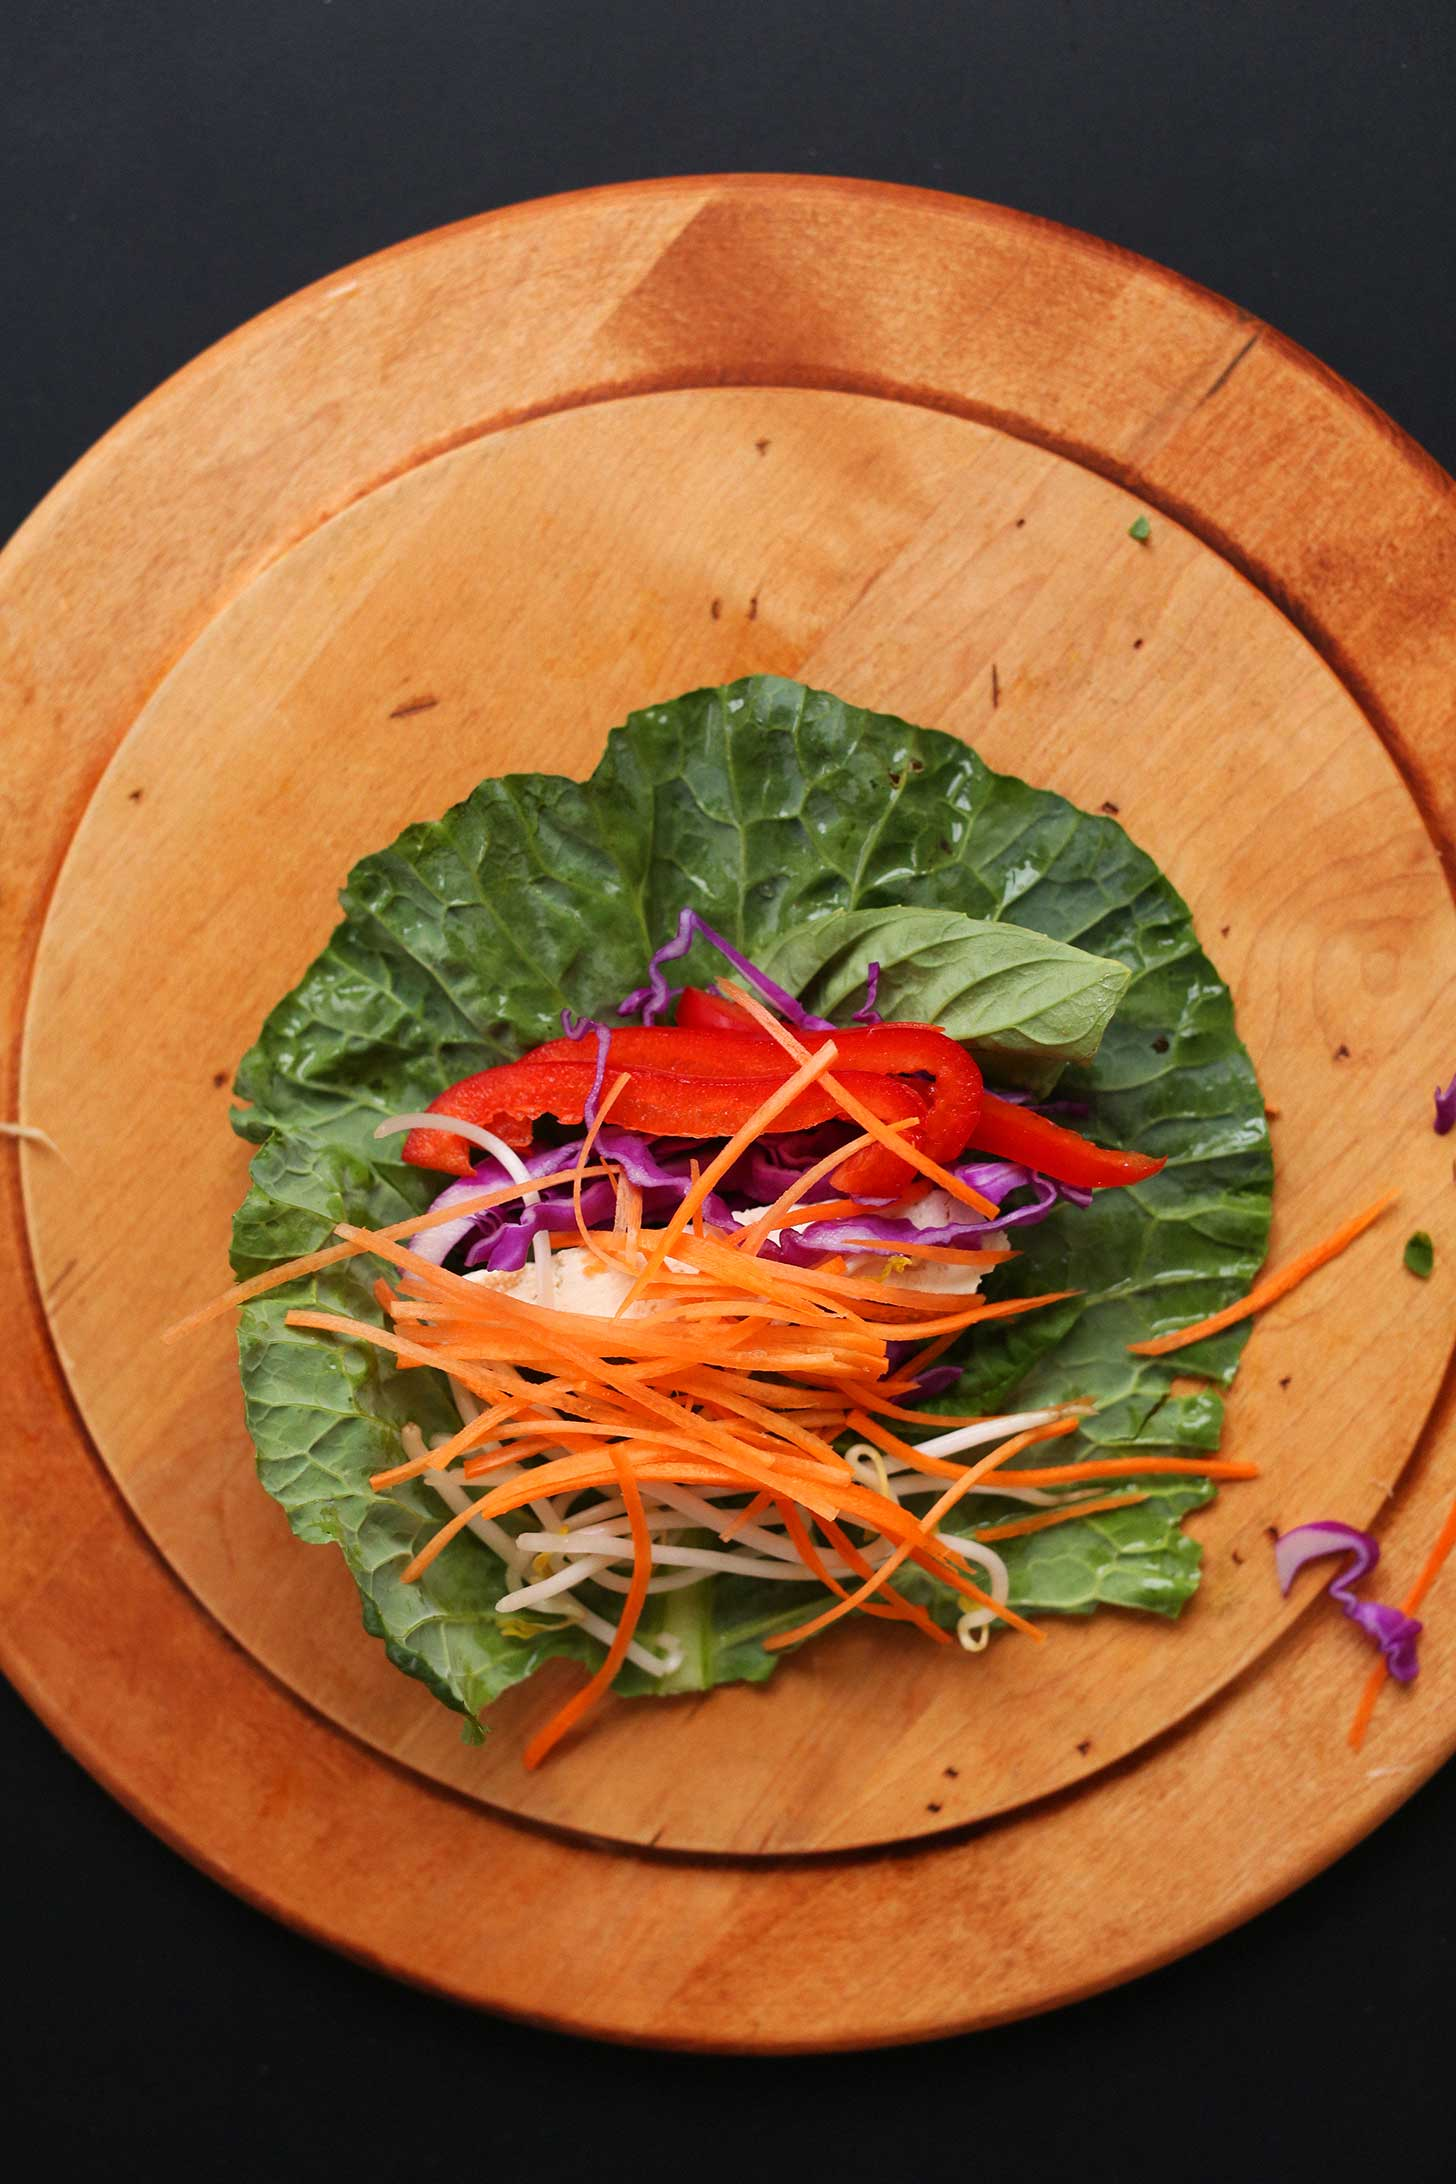 Wood cutting board with a collard green leaf and fresh ingredients for making hearty plant-based spring rolls